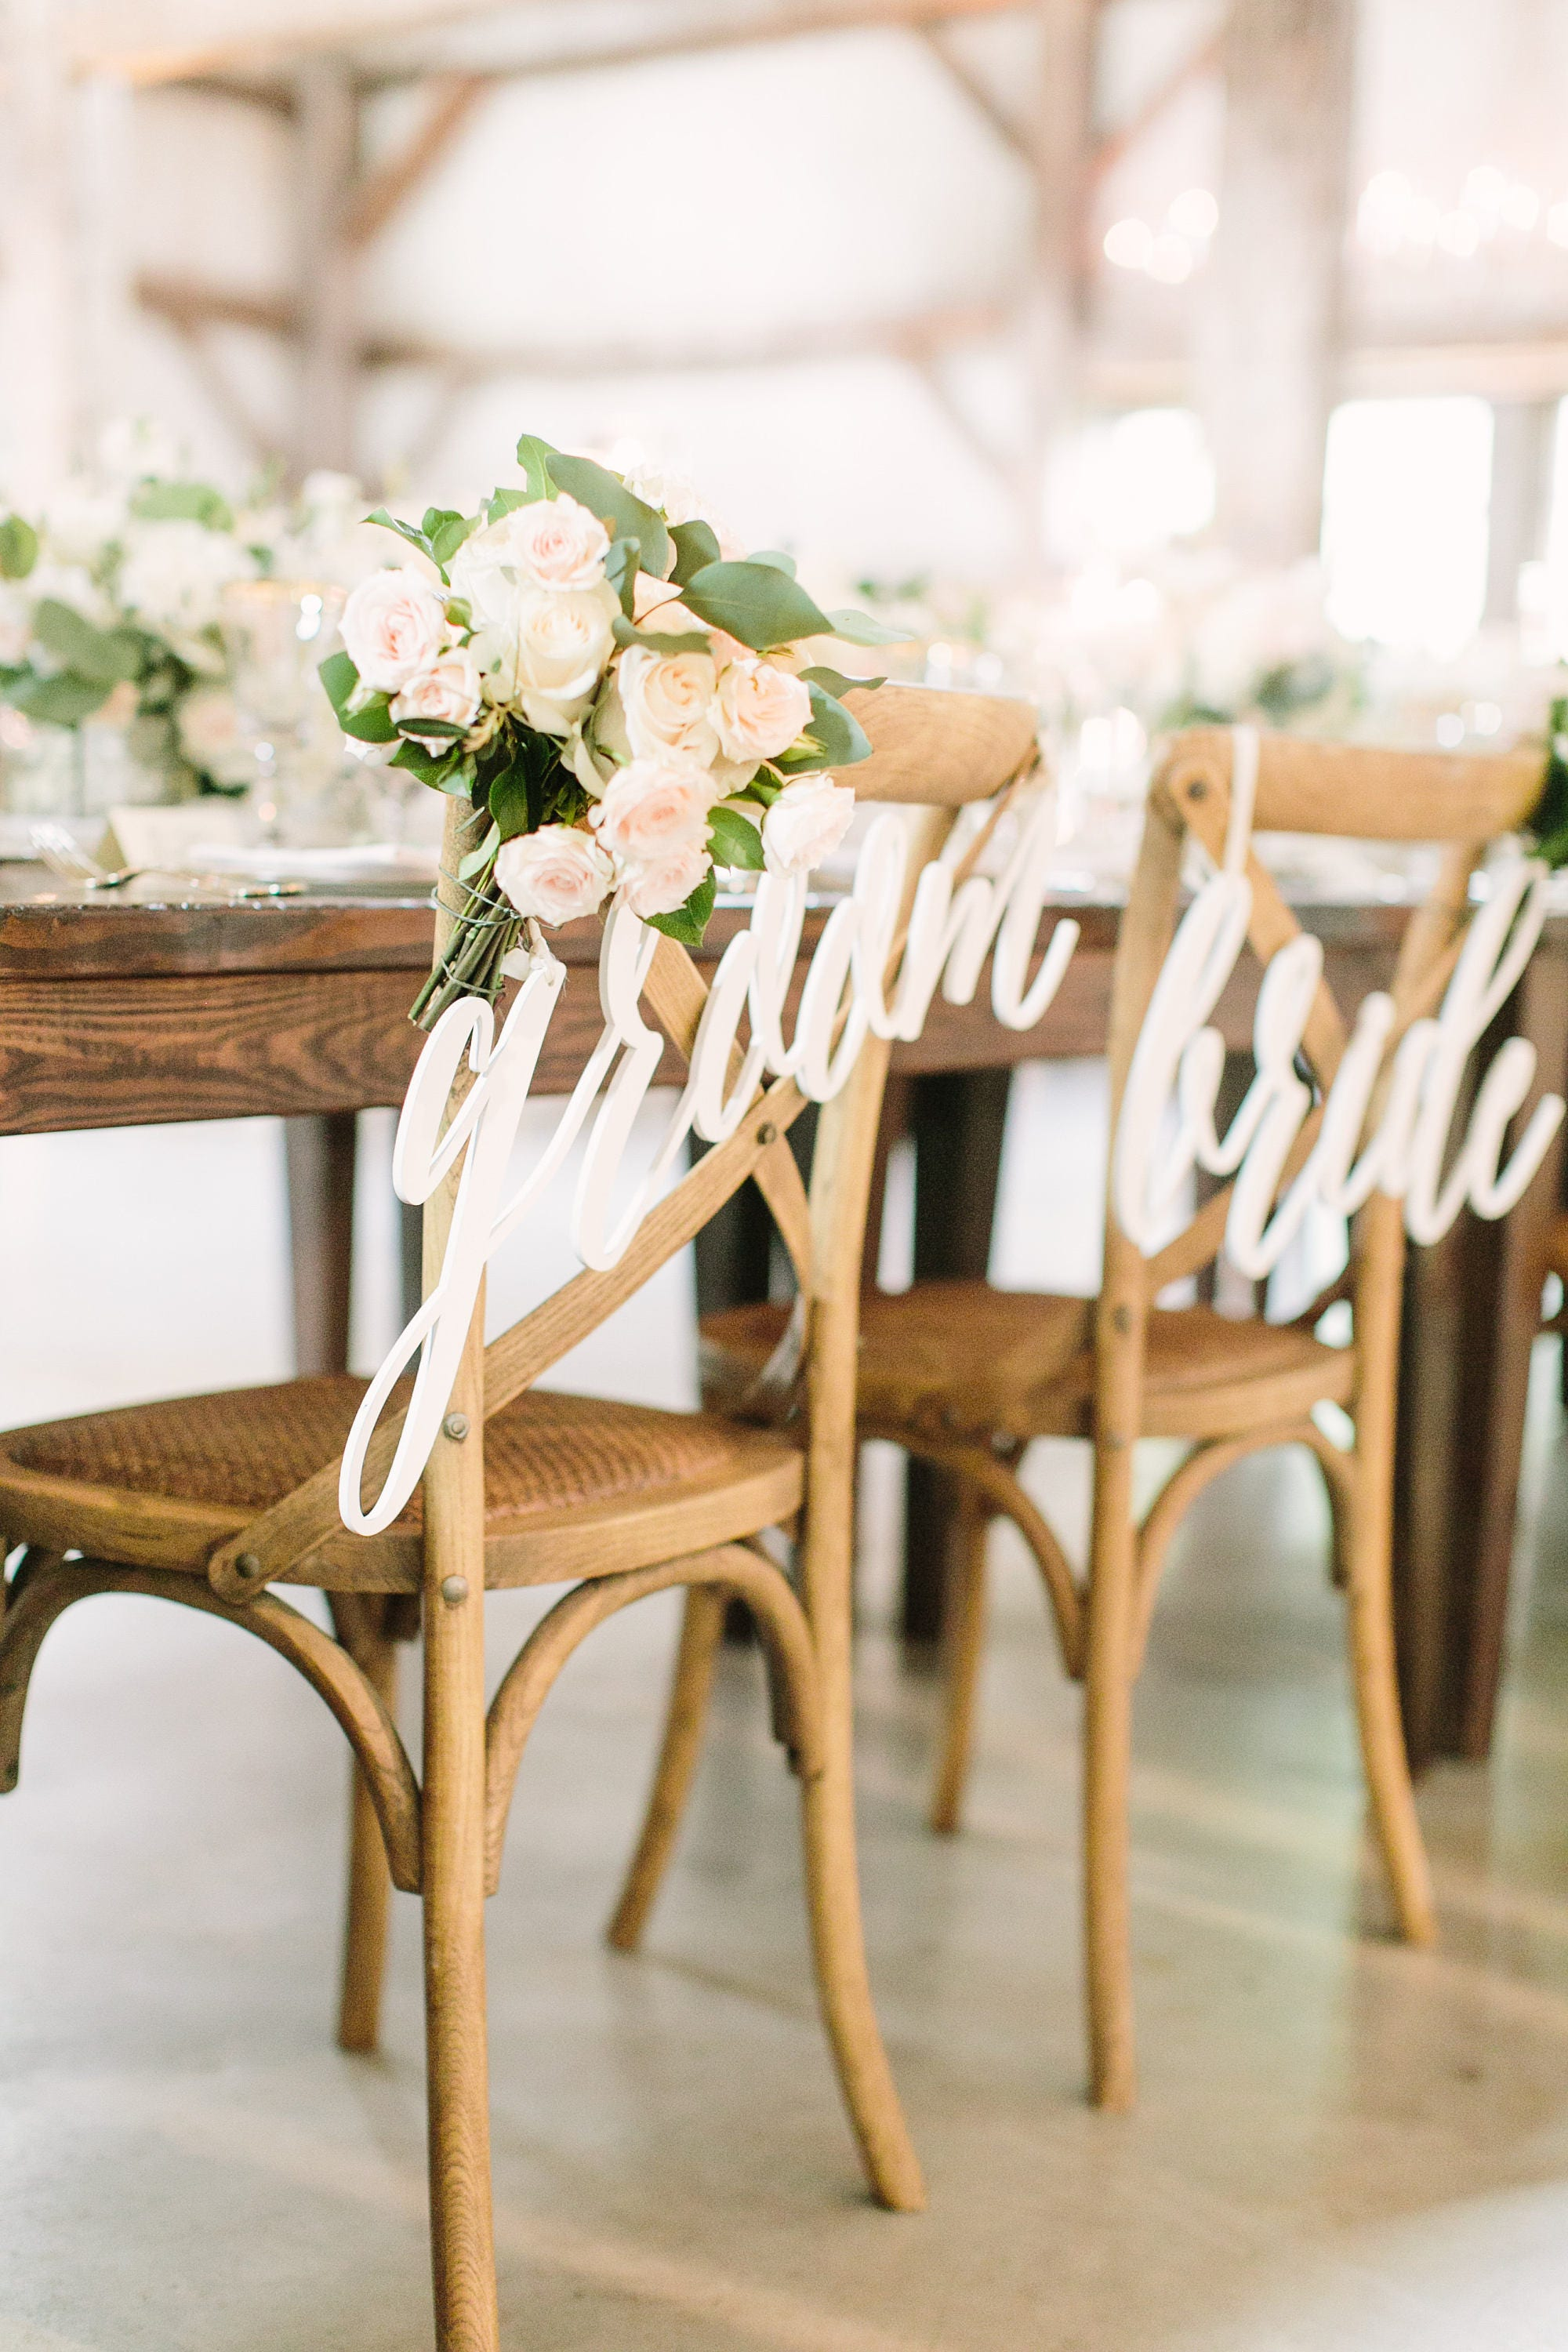 Bride Groom Chair Signs for Wedding Hanging Chair Sign Wooden